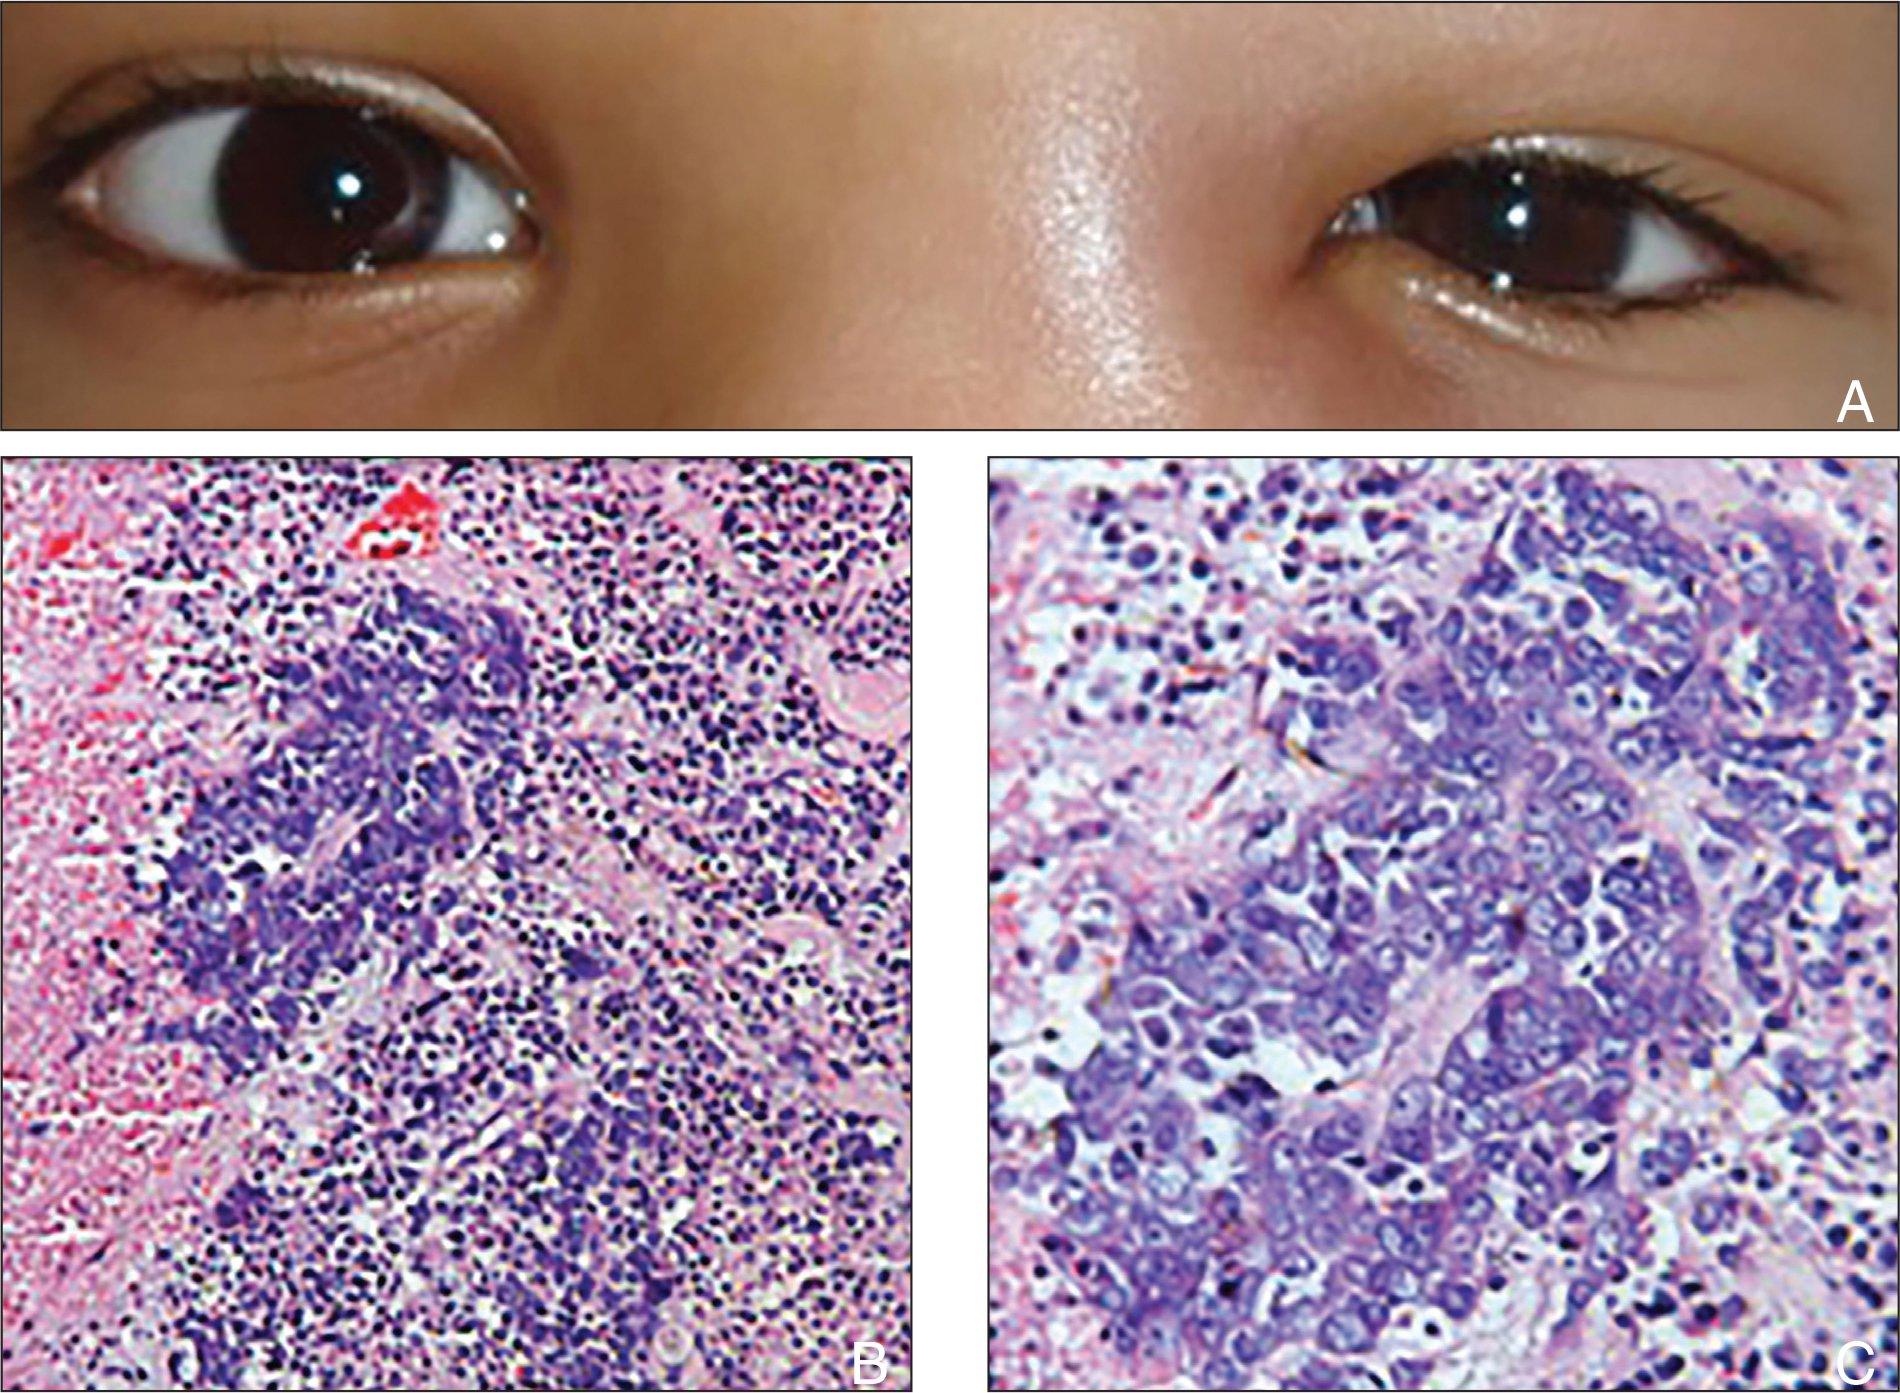 A 6-year-old boy with (A) left side swelling over the lacrimal sac area; (B) large areas of necrosis, hemorrhage, and islands of poorly differentiated squamous cell carcinoma (hematoxylin–eosin stain, original magnification ×100); and (C) higher magnification of the same (hematoxylin–eosin stain, original magnification ×400).